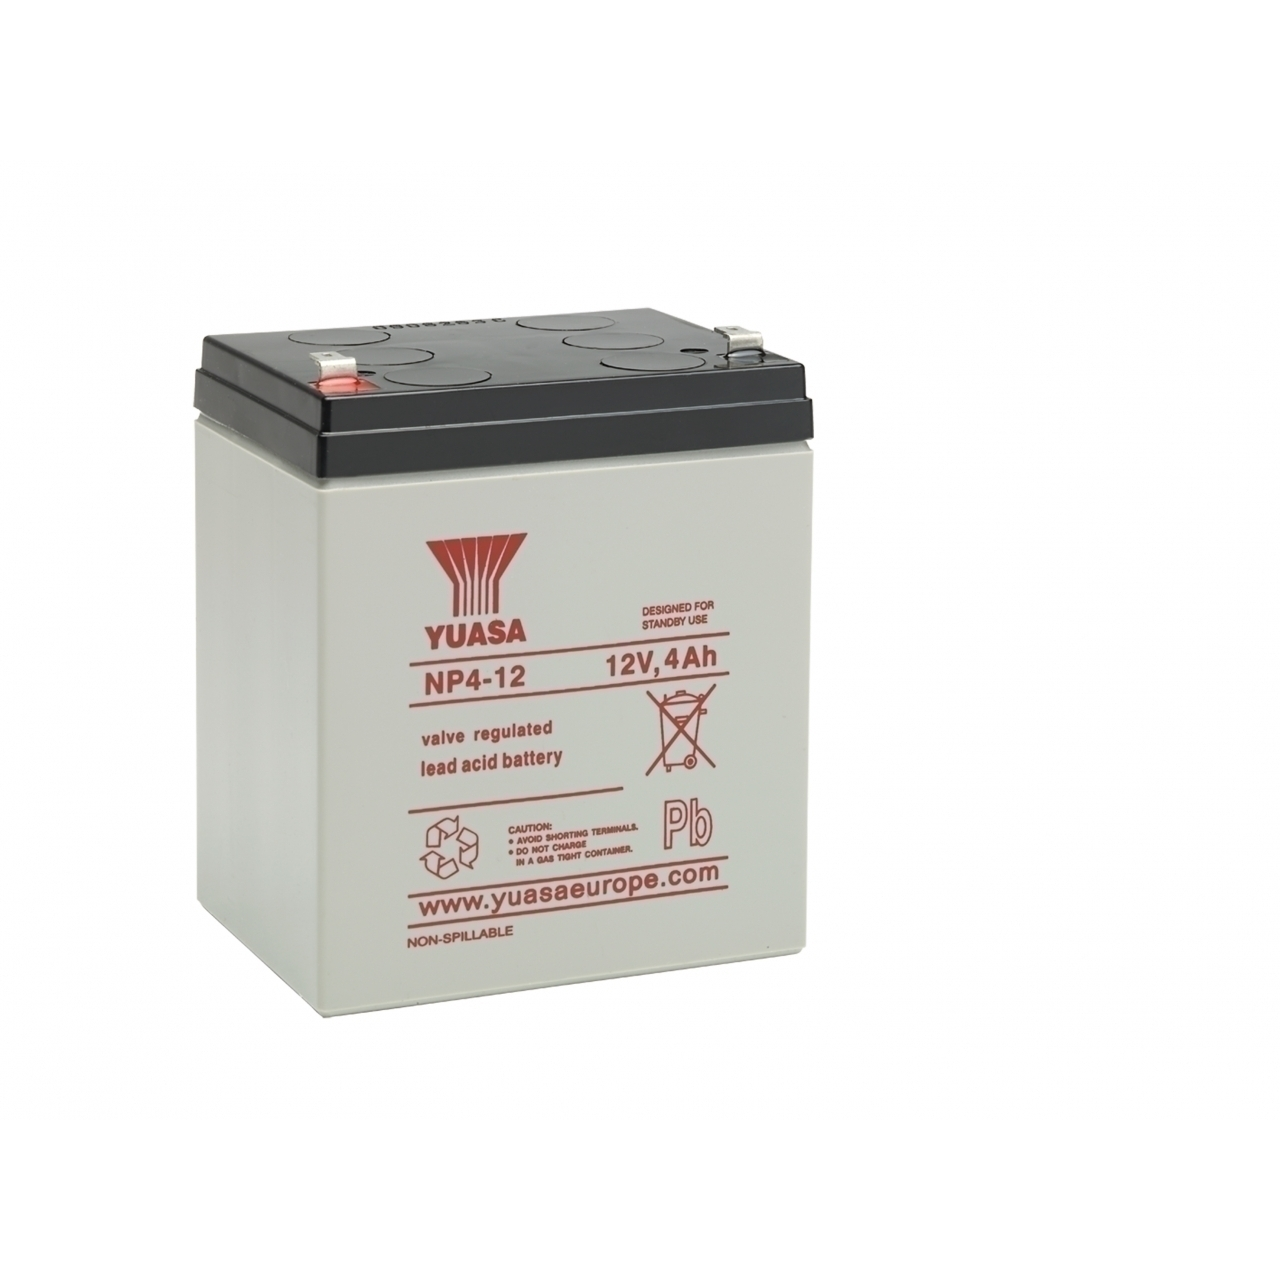 NP4-12 12V 4AH Lead Acid Battery